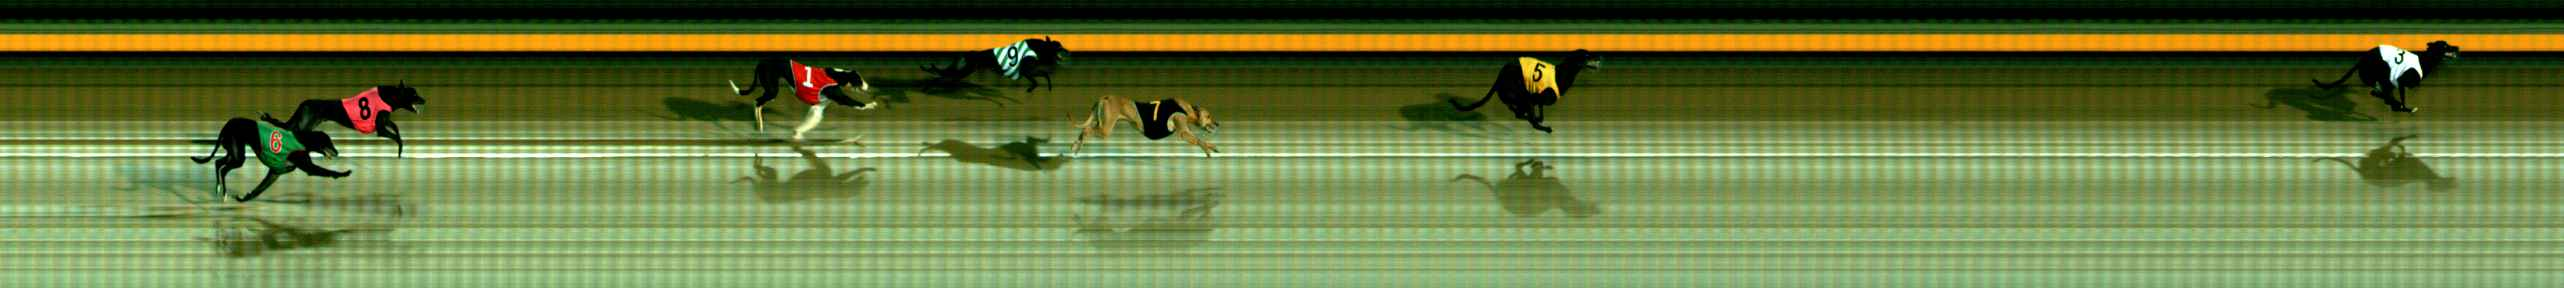 Race result finish photo